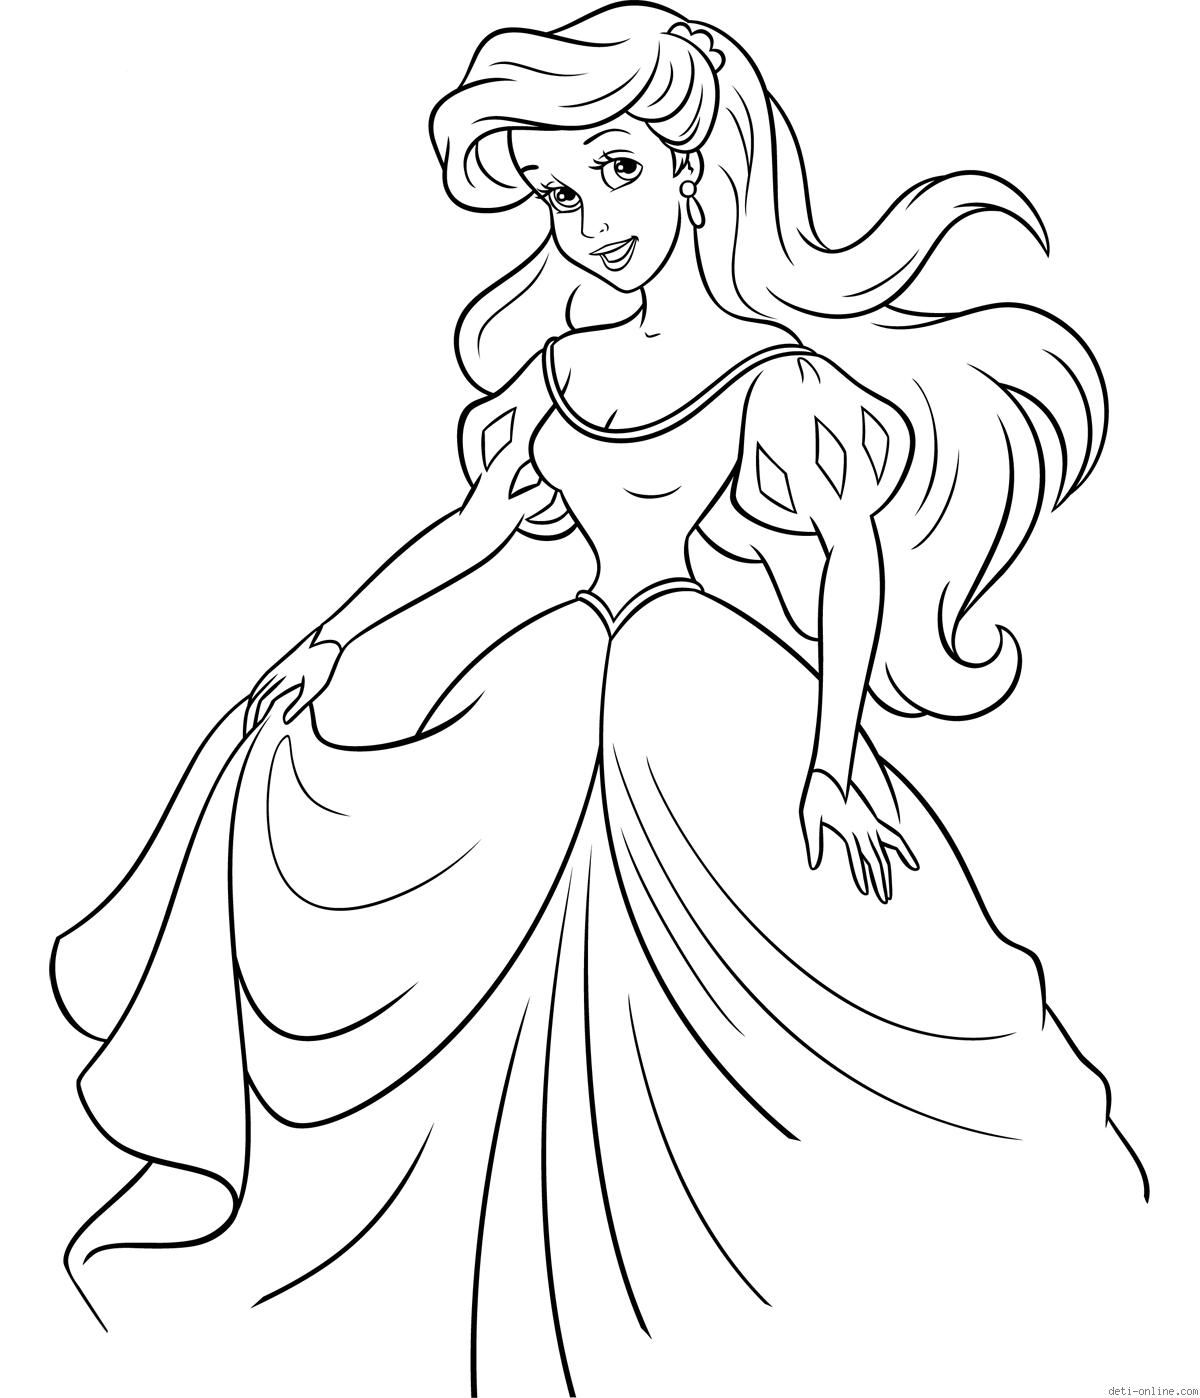 ariel in the dress coloring page